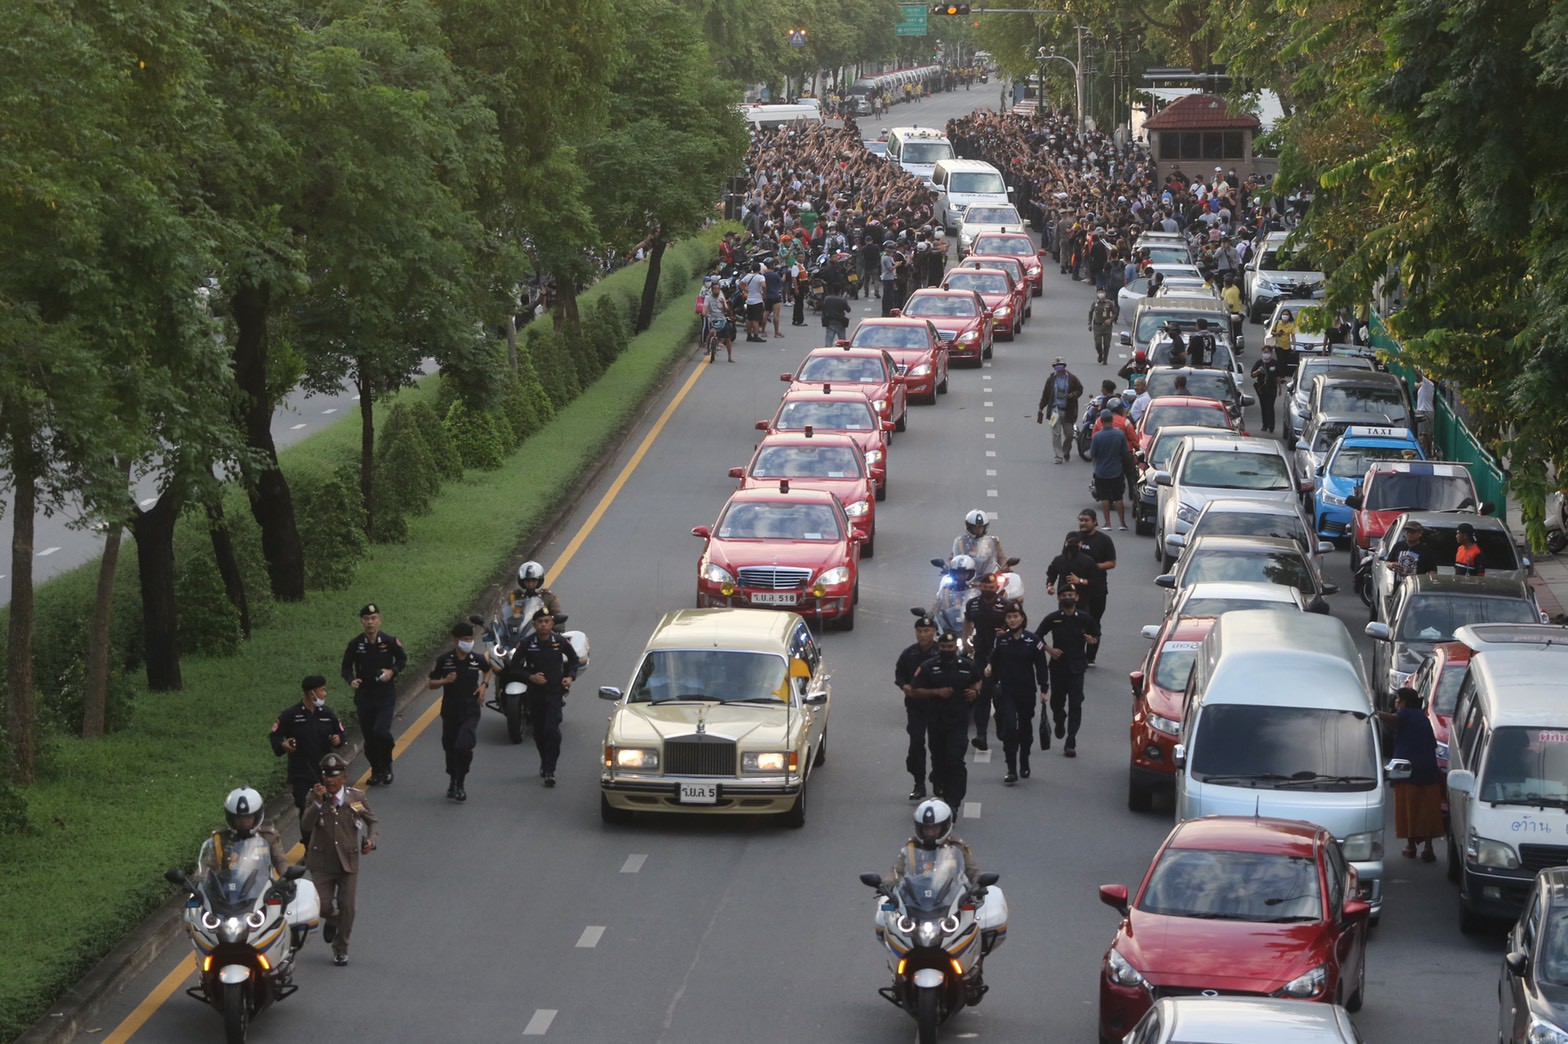 The motorcade carrying Her Majesty the Queen and His Royal Highness Prince Dipangkorn Rasmijoti passes through demonstrators near Government House on Wednesday evening. (Photo supplied)